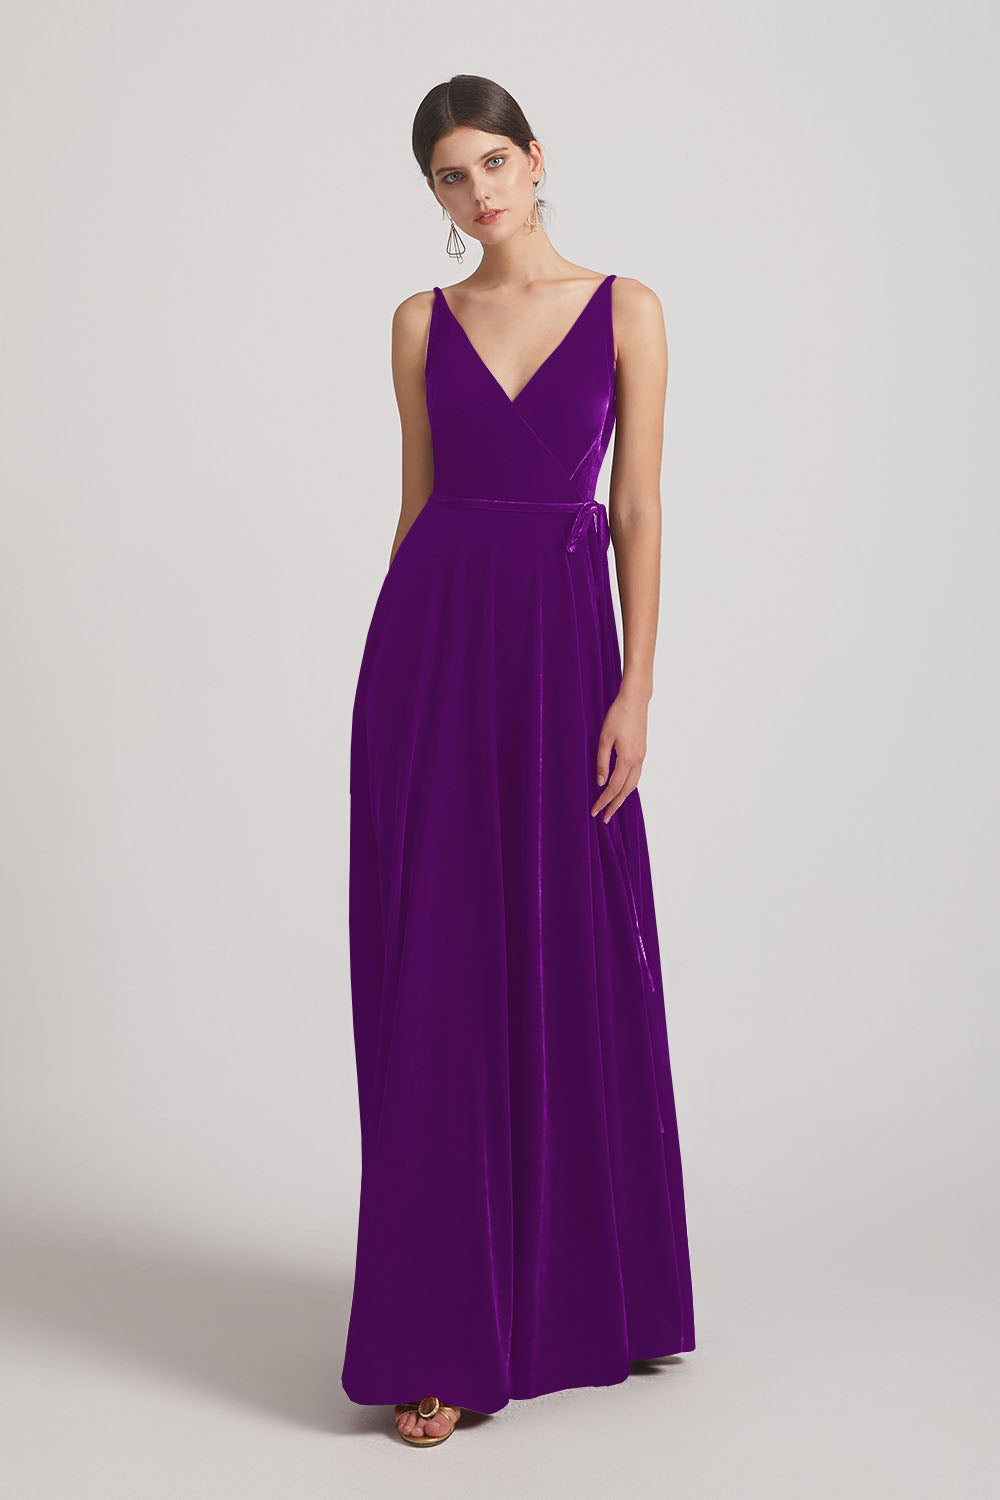 Spaghetti Straps Velvet Faux Wrap Bridesmaid Dresses With Waist Tie (AF0149)